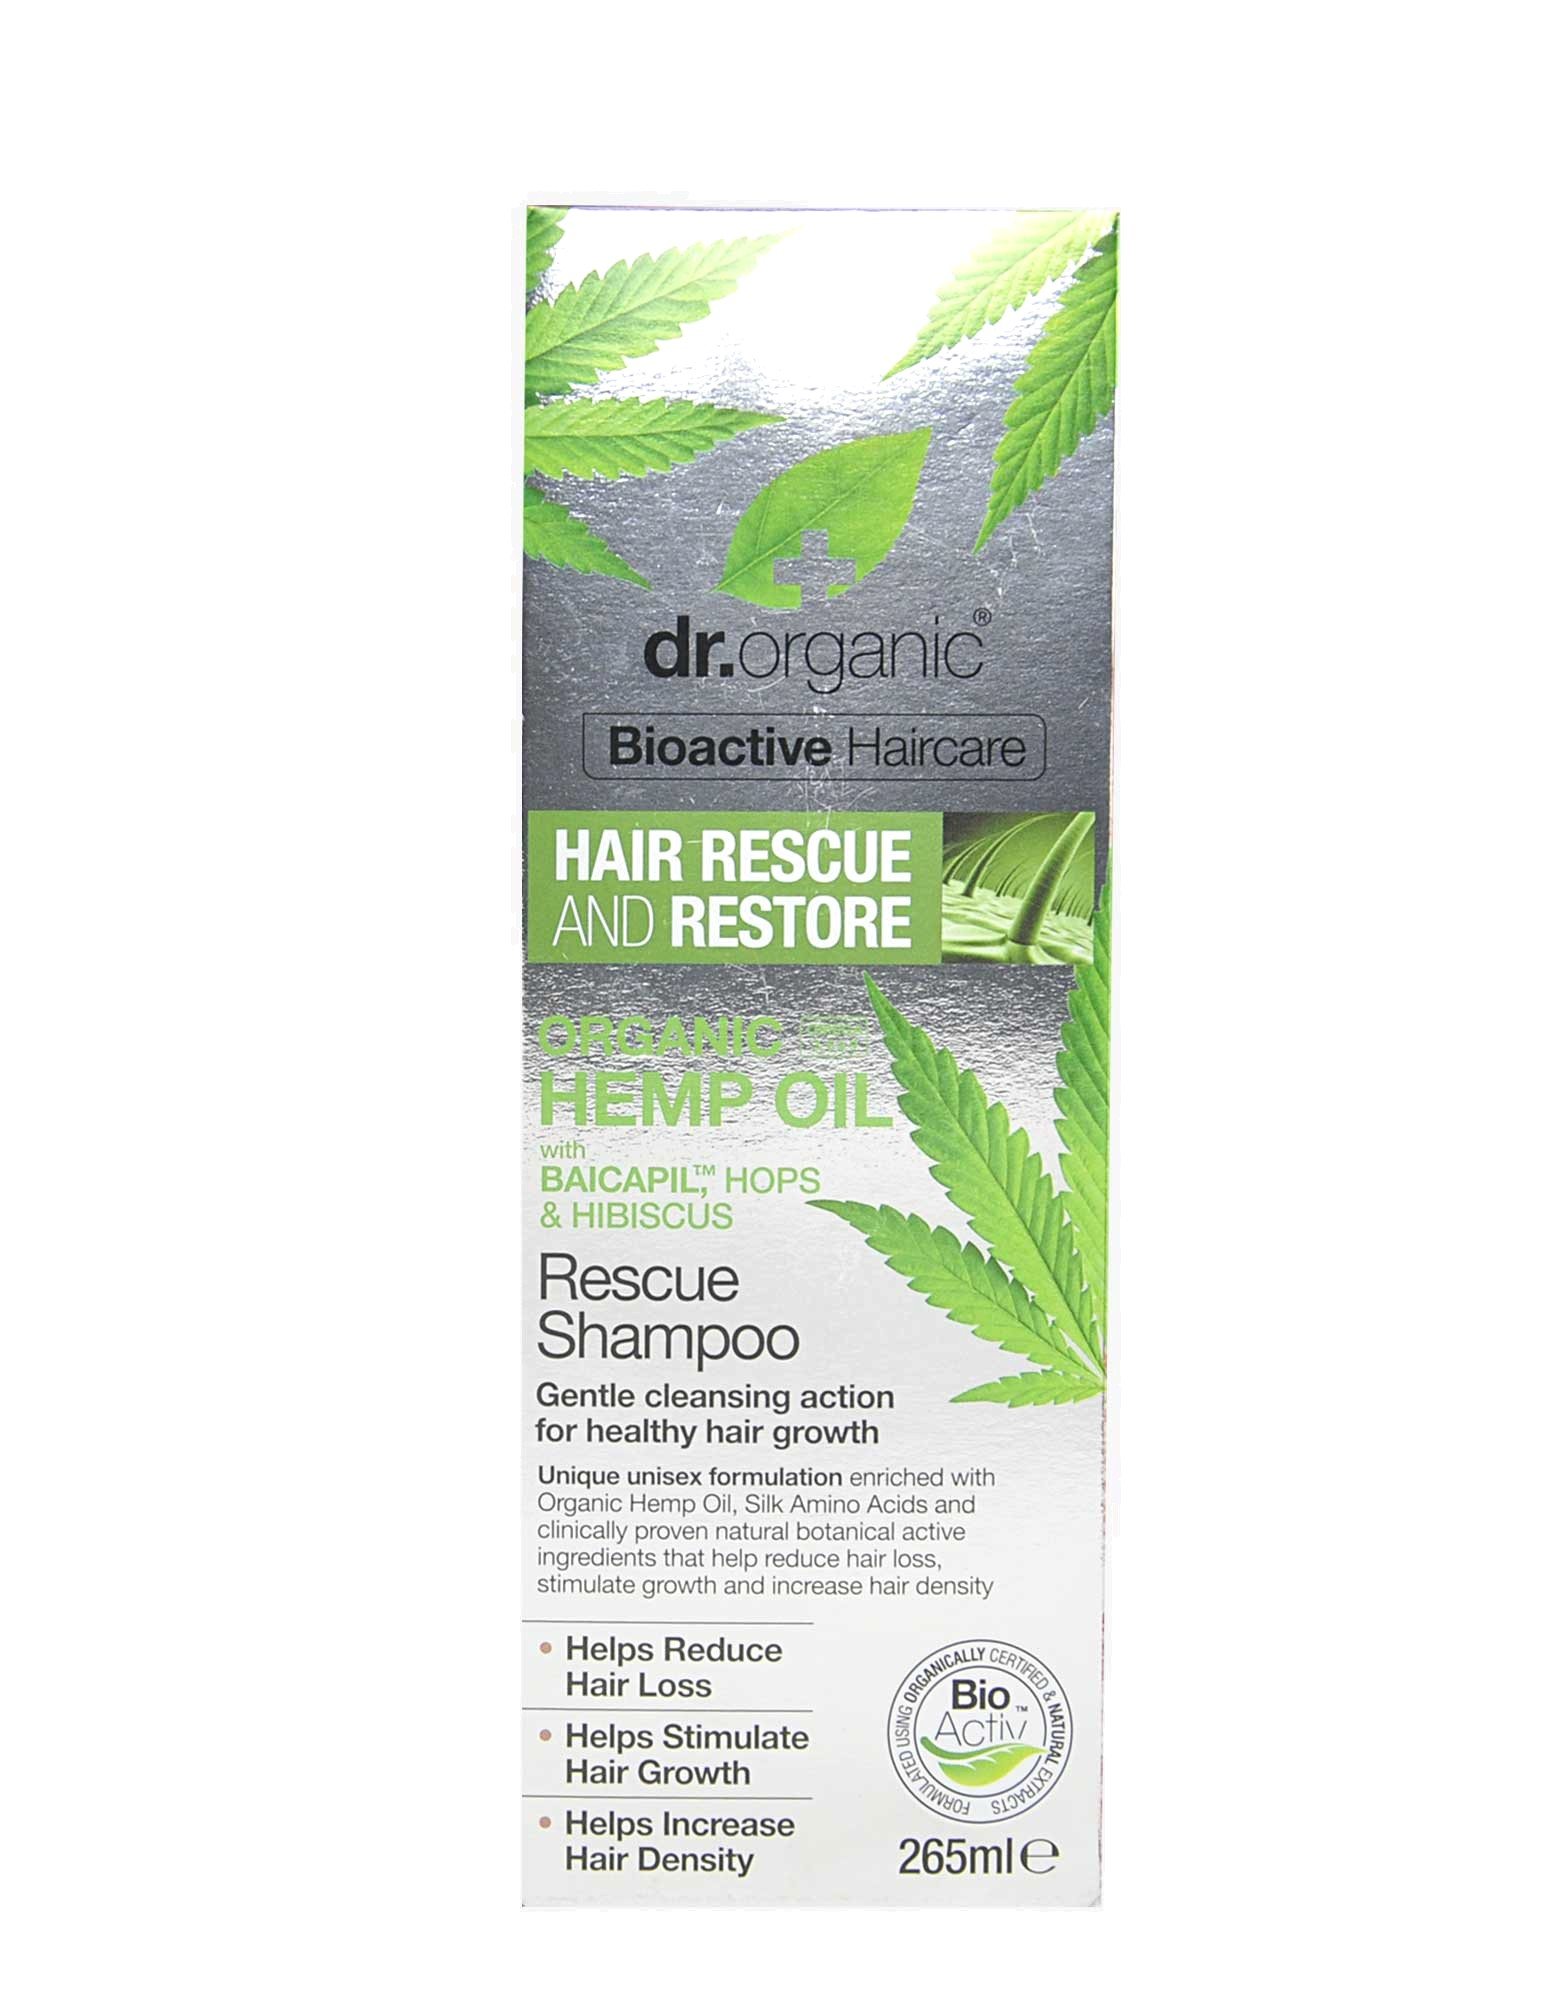 dr organic hemp oil rescue shampoo